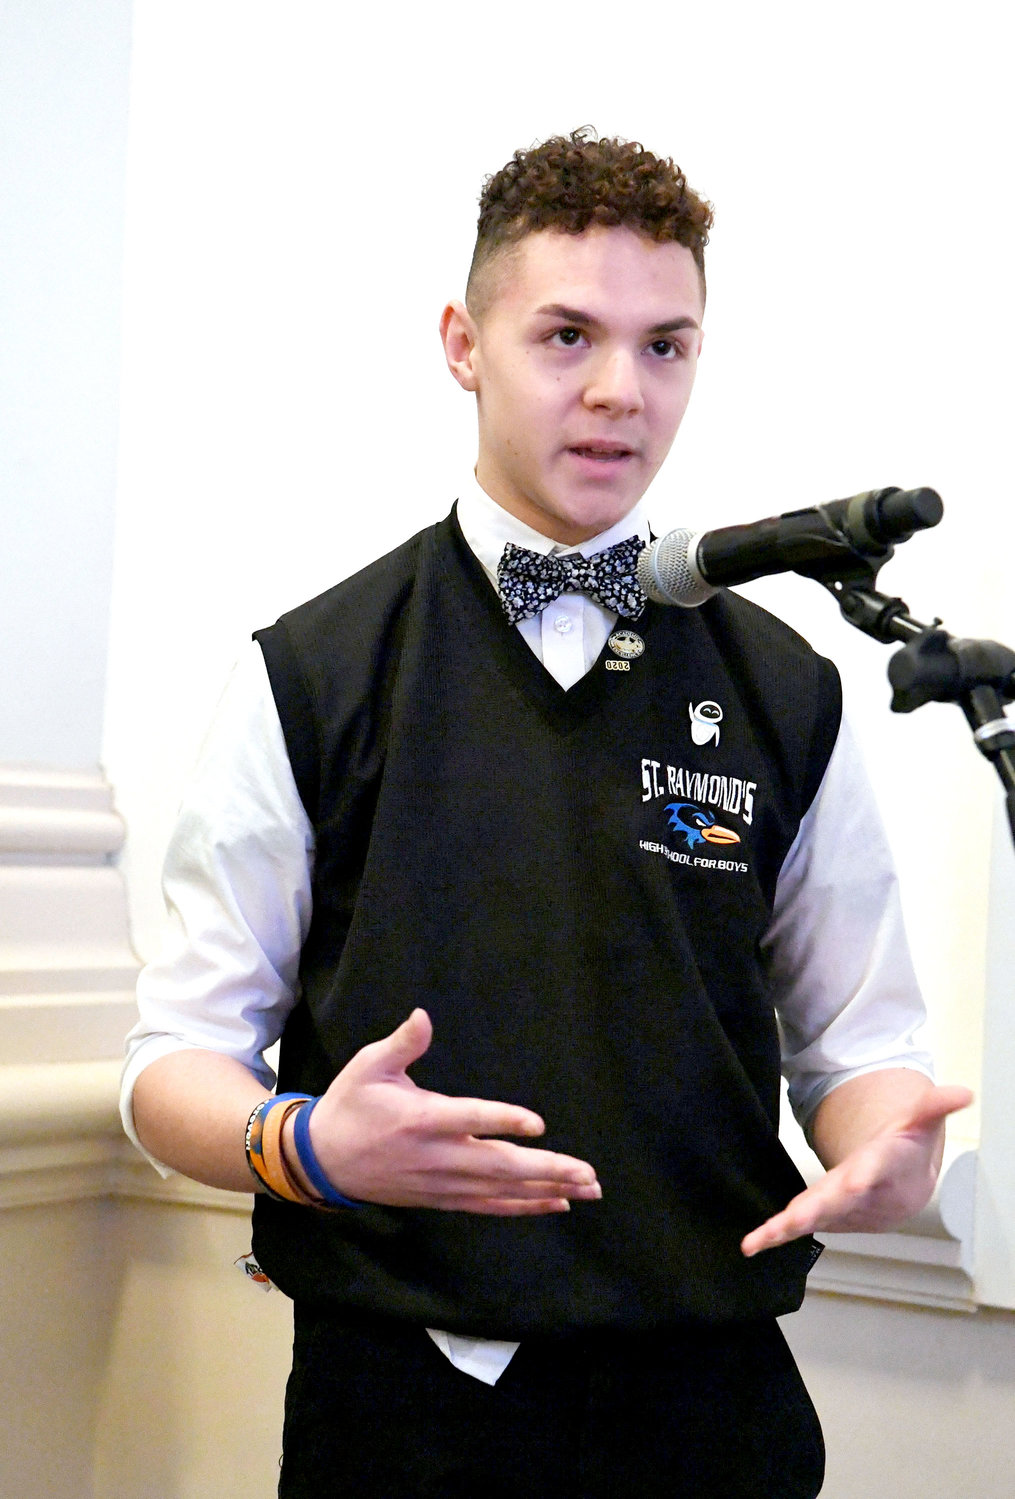 "FUTURE-FOCUSED—Joeden Hernandez, a senior at St. Raymond High School for Boys in the Bronx, raises a question during the fourth annual Student Leadership Conference, ""The Culture of Encounter: A Catholic Lens,"" March 12 at the Sheen Center for Thought and Culture in lower Manhattan."